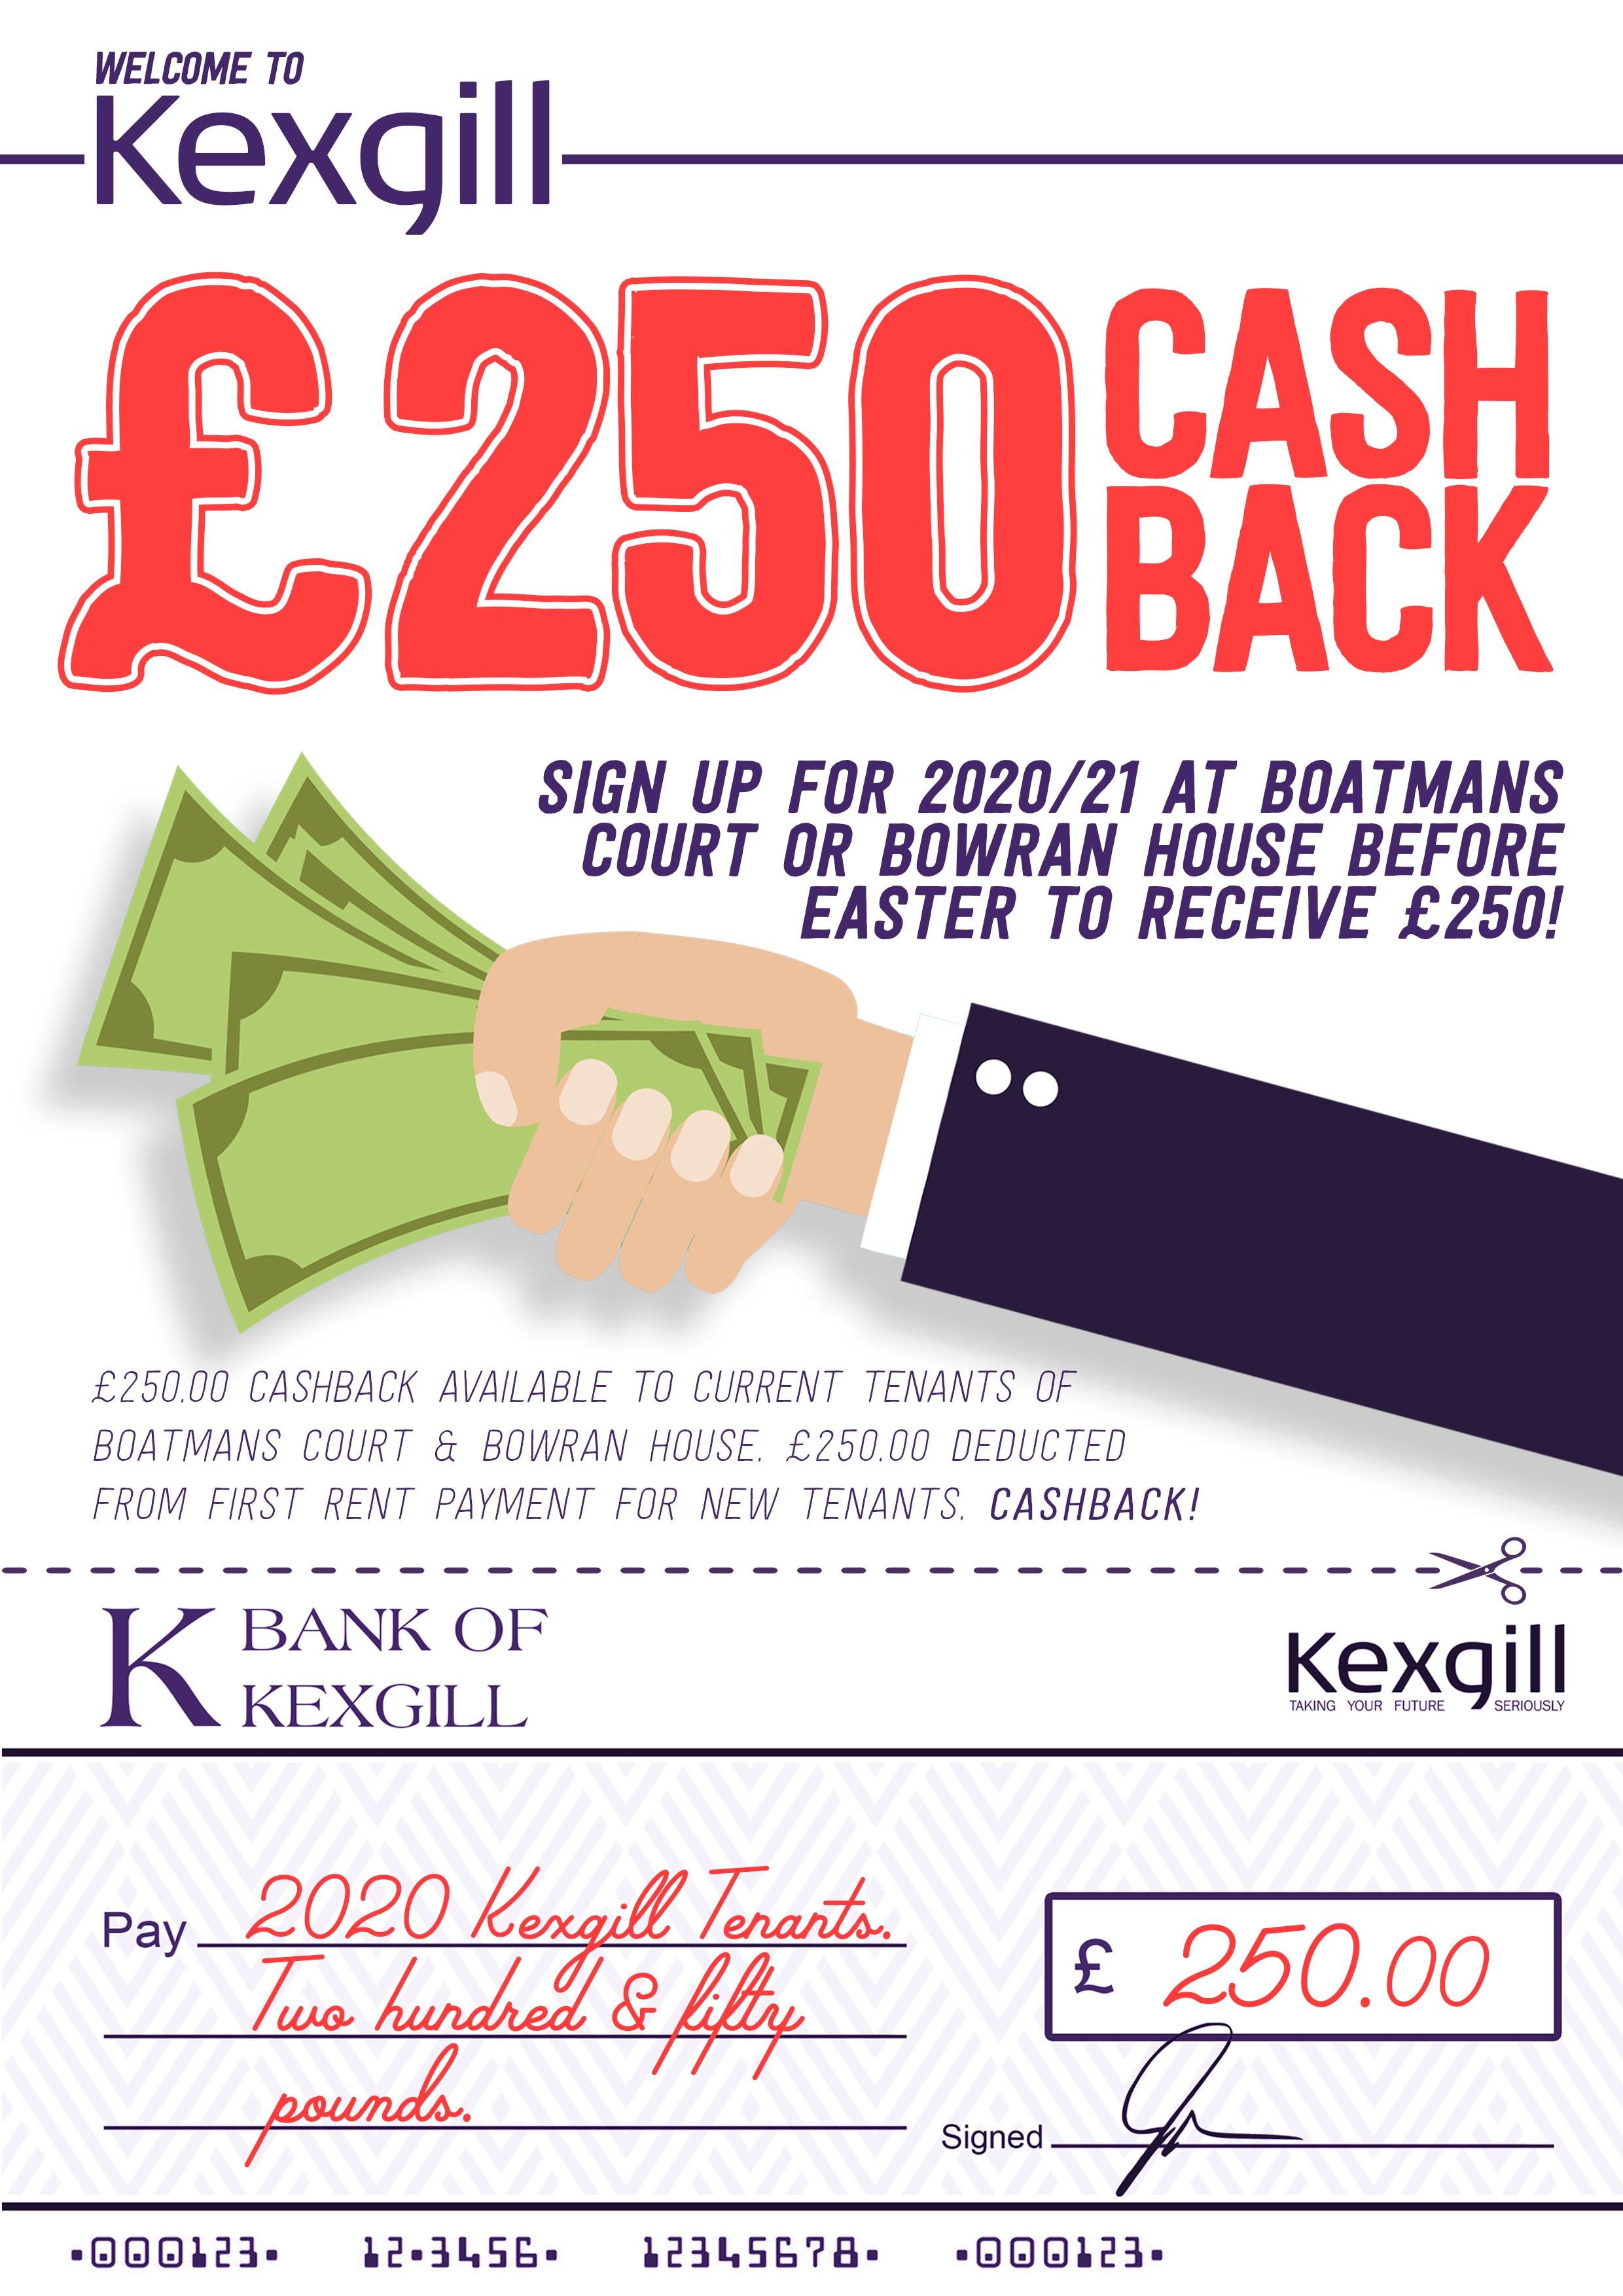 kexgill-cash-back-for-everyone-poster